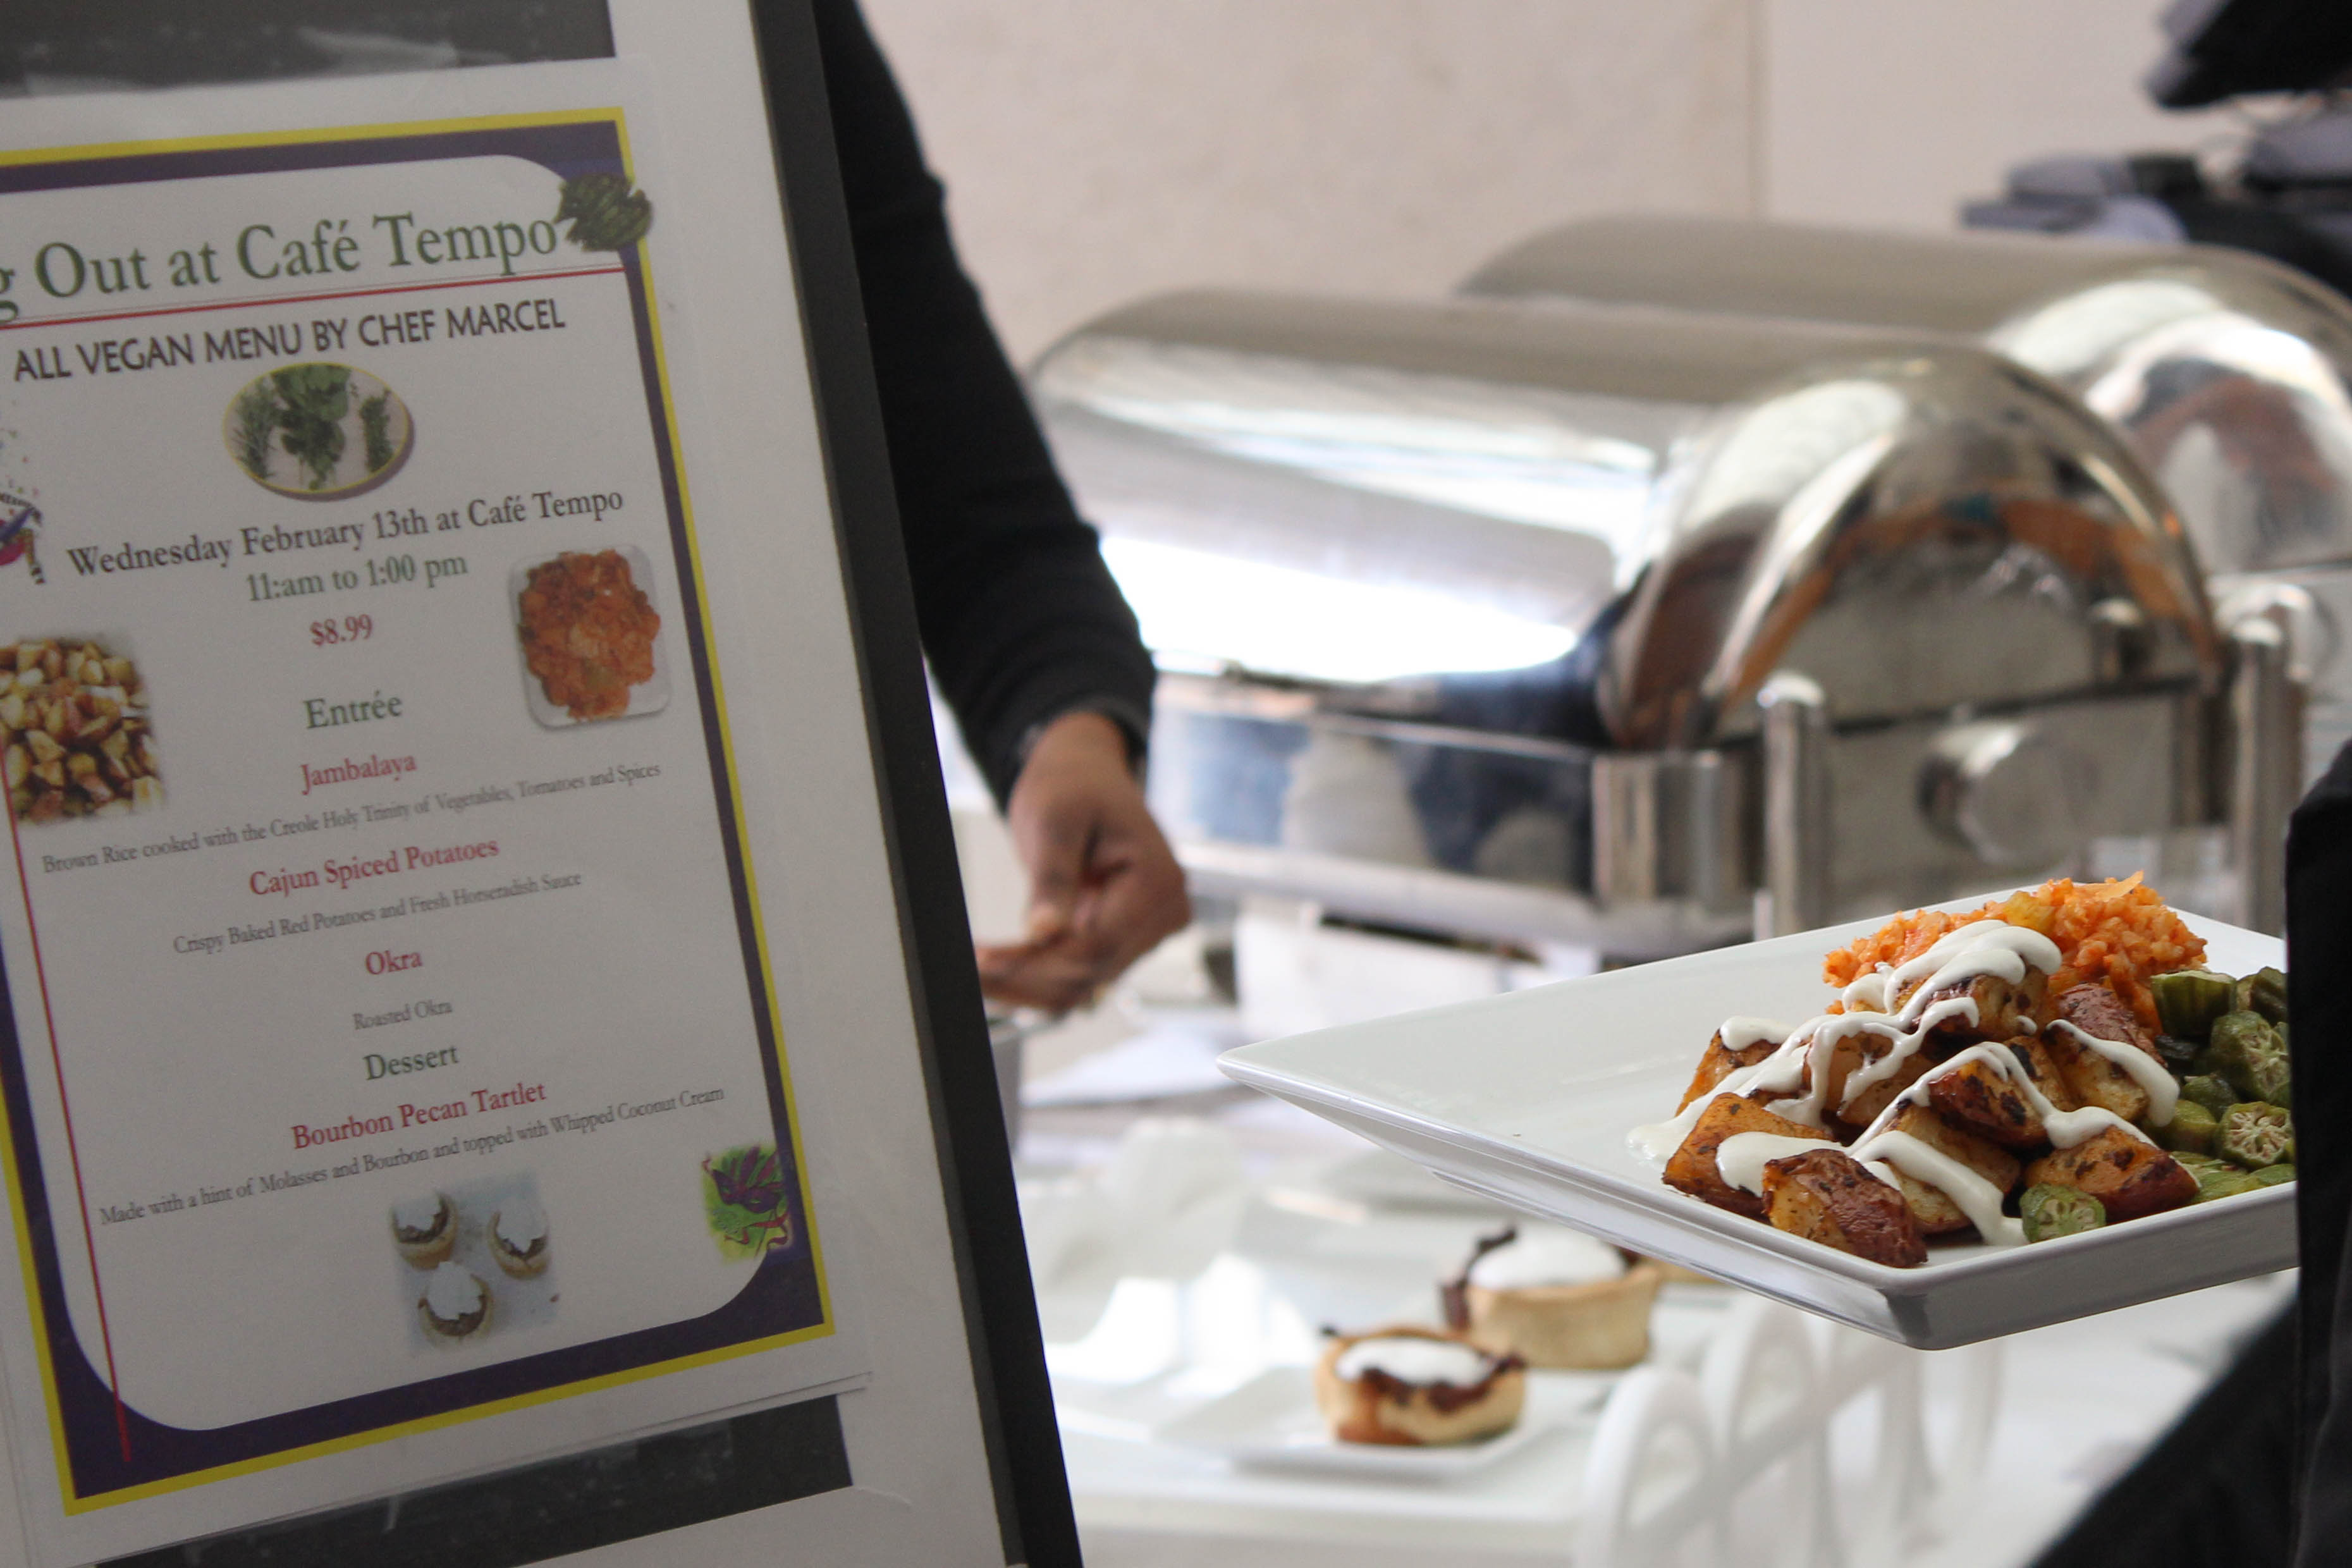 Gallery: Veg Out gives students an opportunity to try vegan